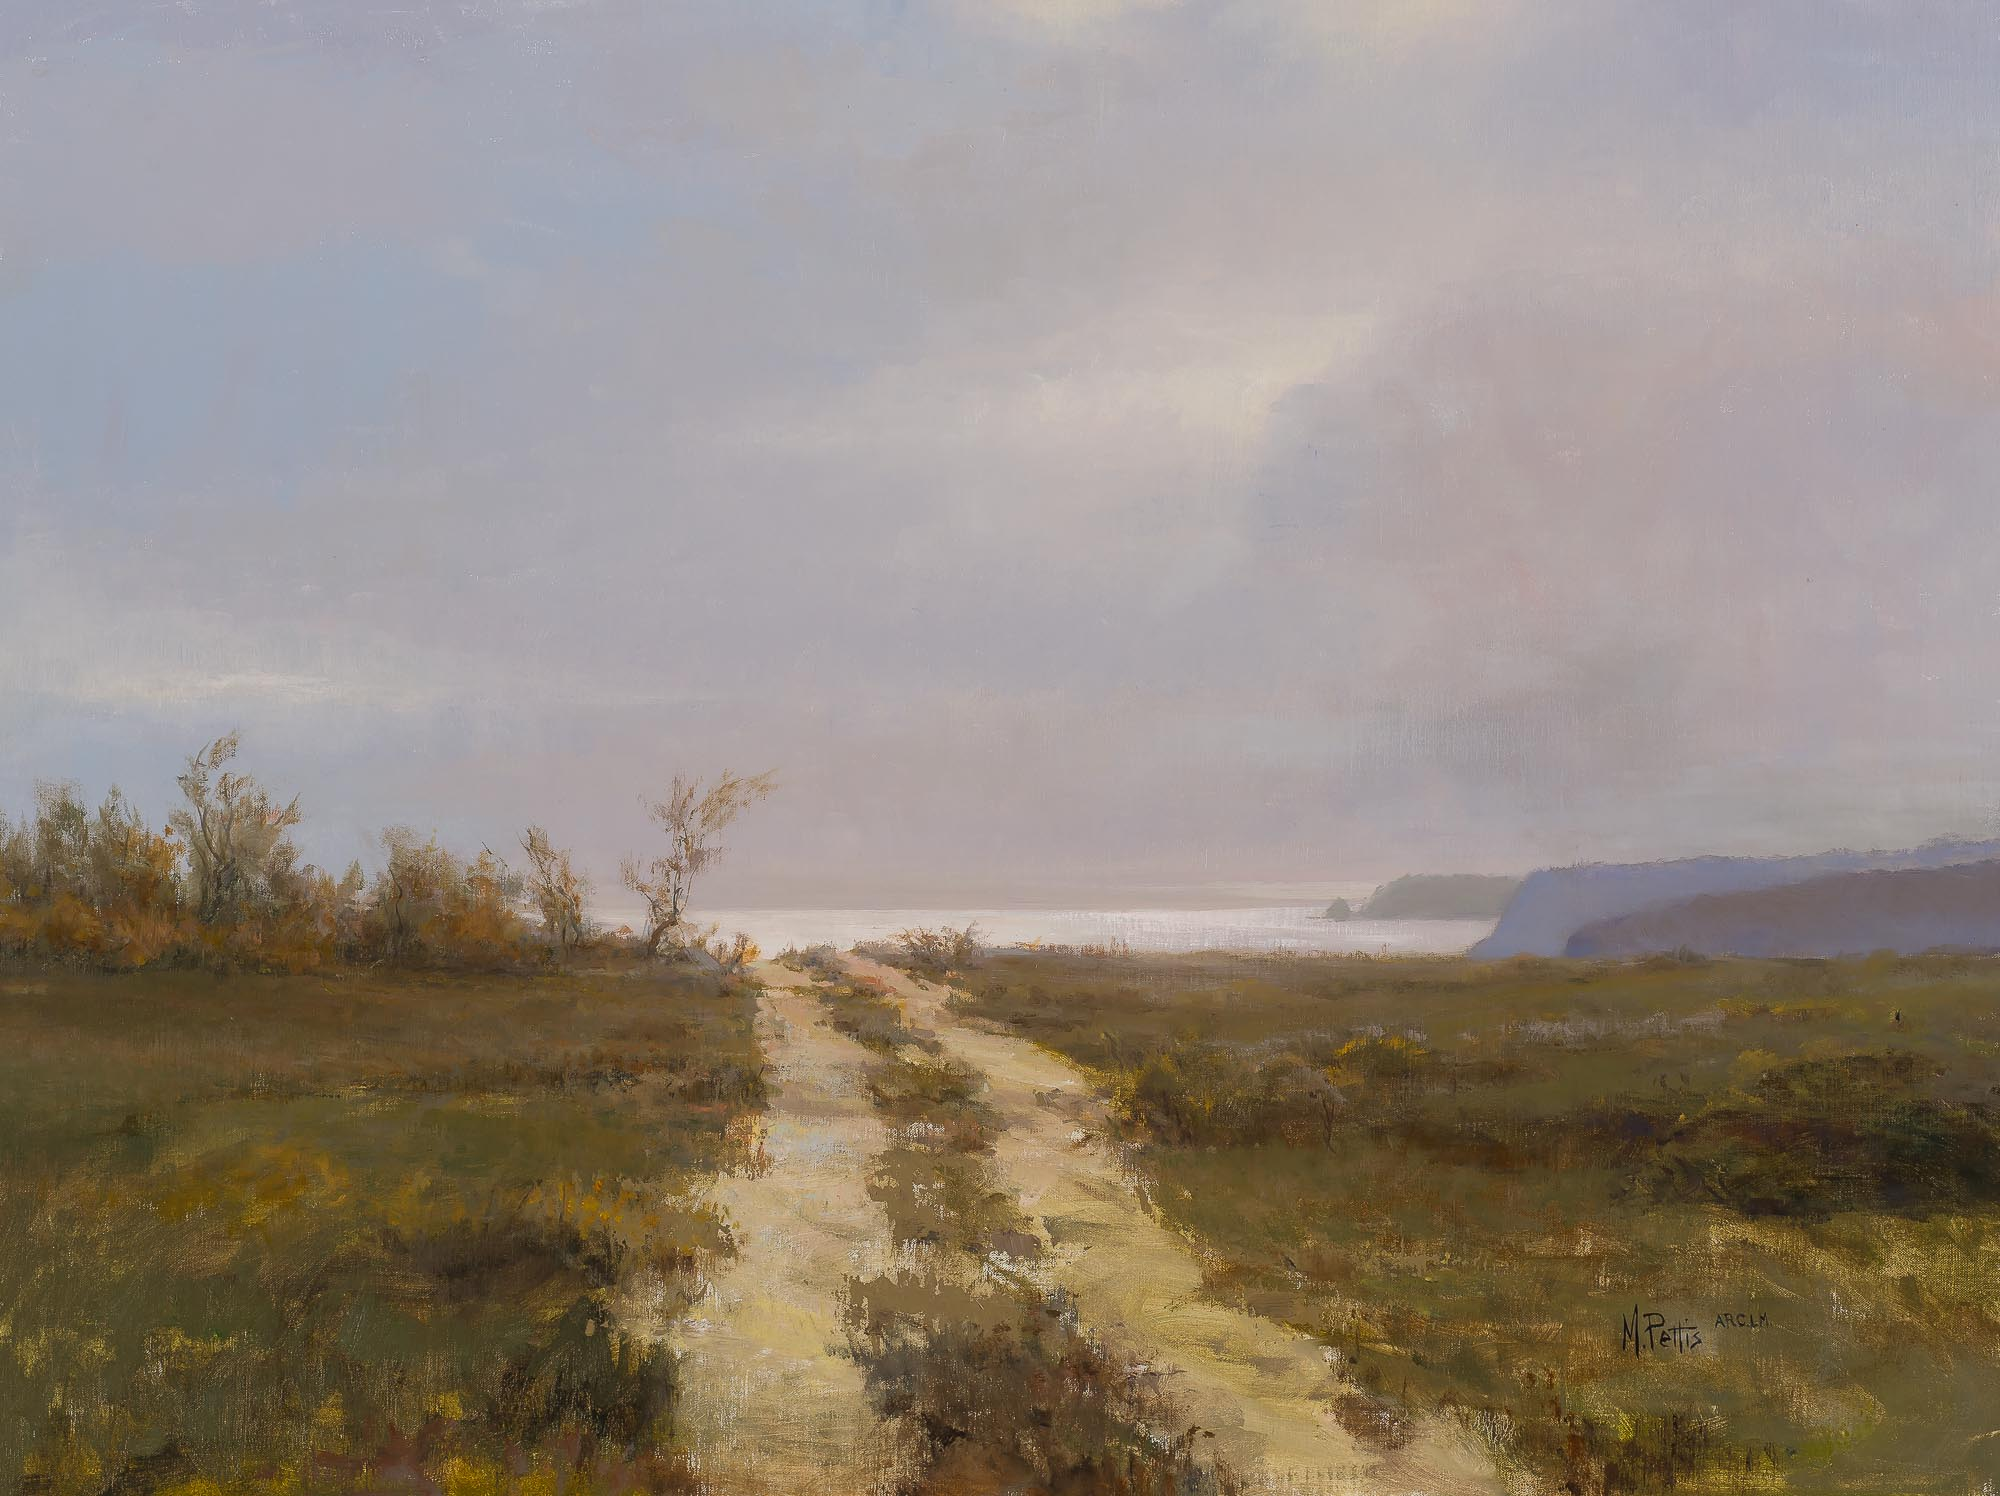 Mary Pettis, Road to the Sea